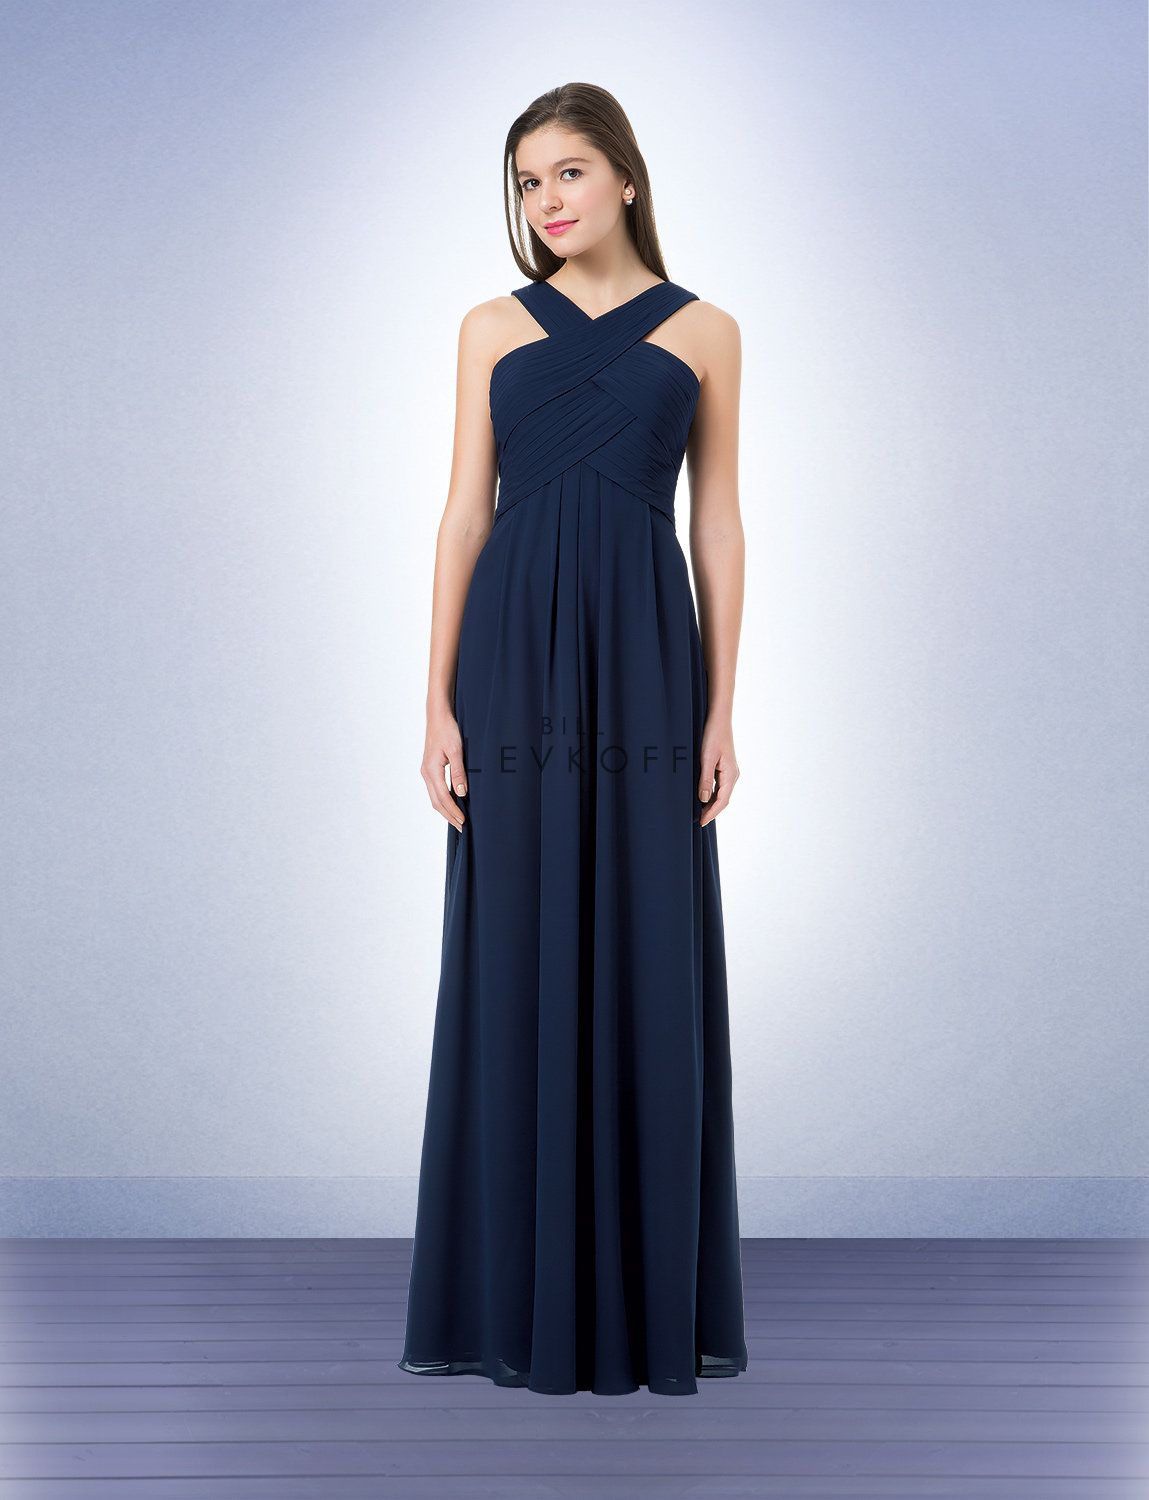 Bridesmaid dress style 1218 bridesmaid dresses by bill levkoff bridesmaid dress style 1218 bridesmaid dresses by bill levkoff at weddings by paulette ombrellifo Images